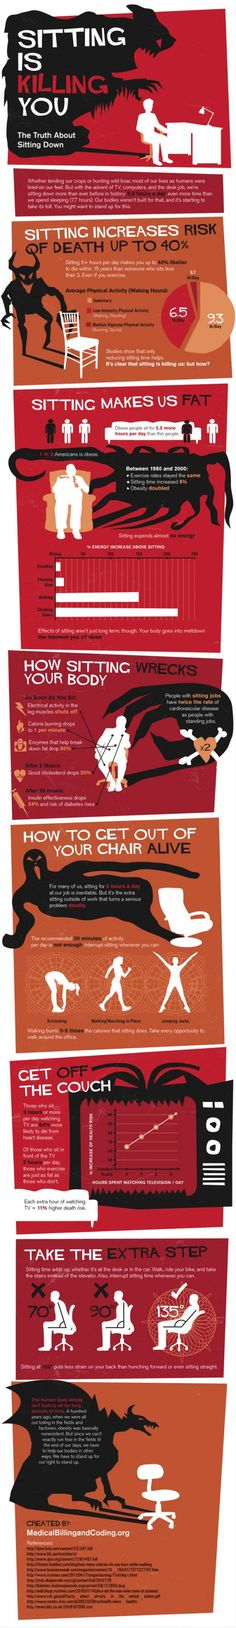 Sitting Is Killing You [Infographic] #officelife #active